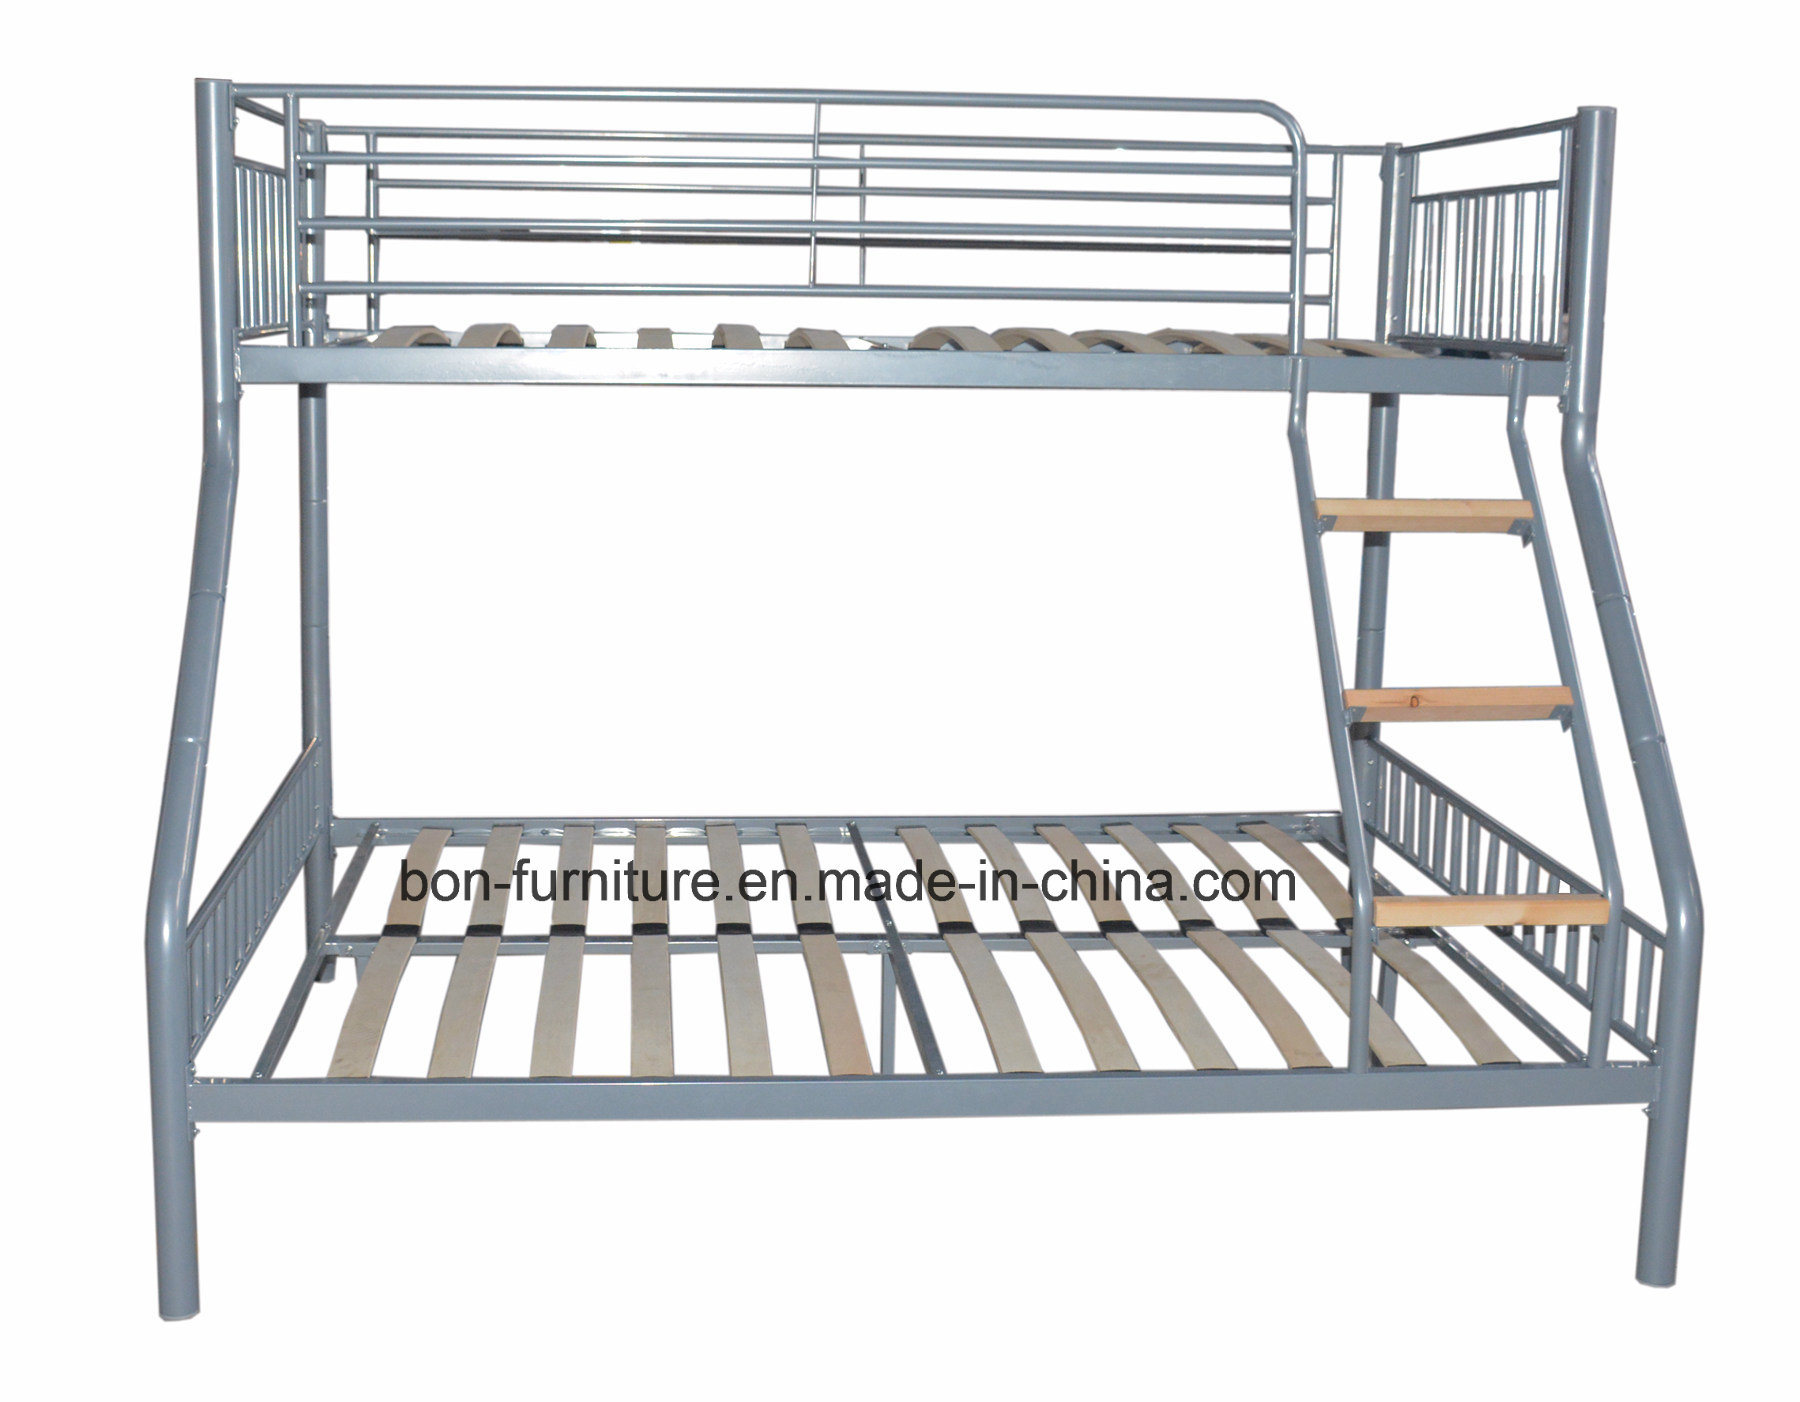 Metal Triple Sleeper Bed with Wooden Slats Base